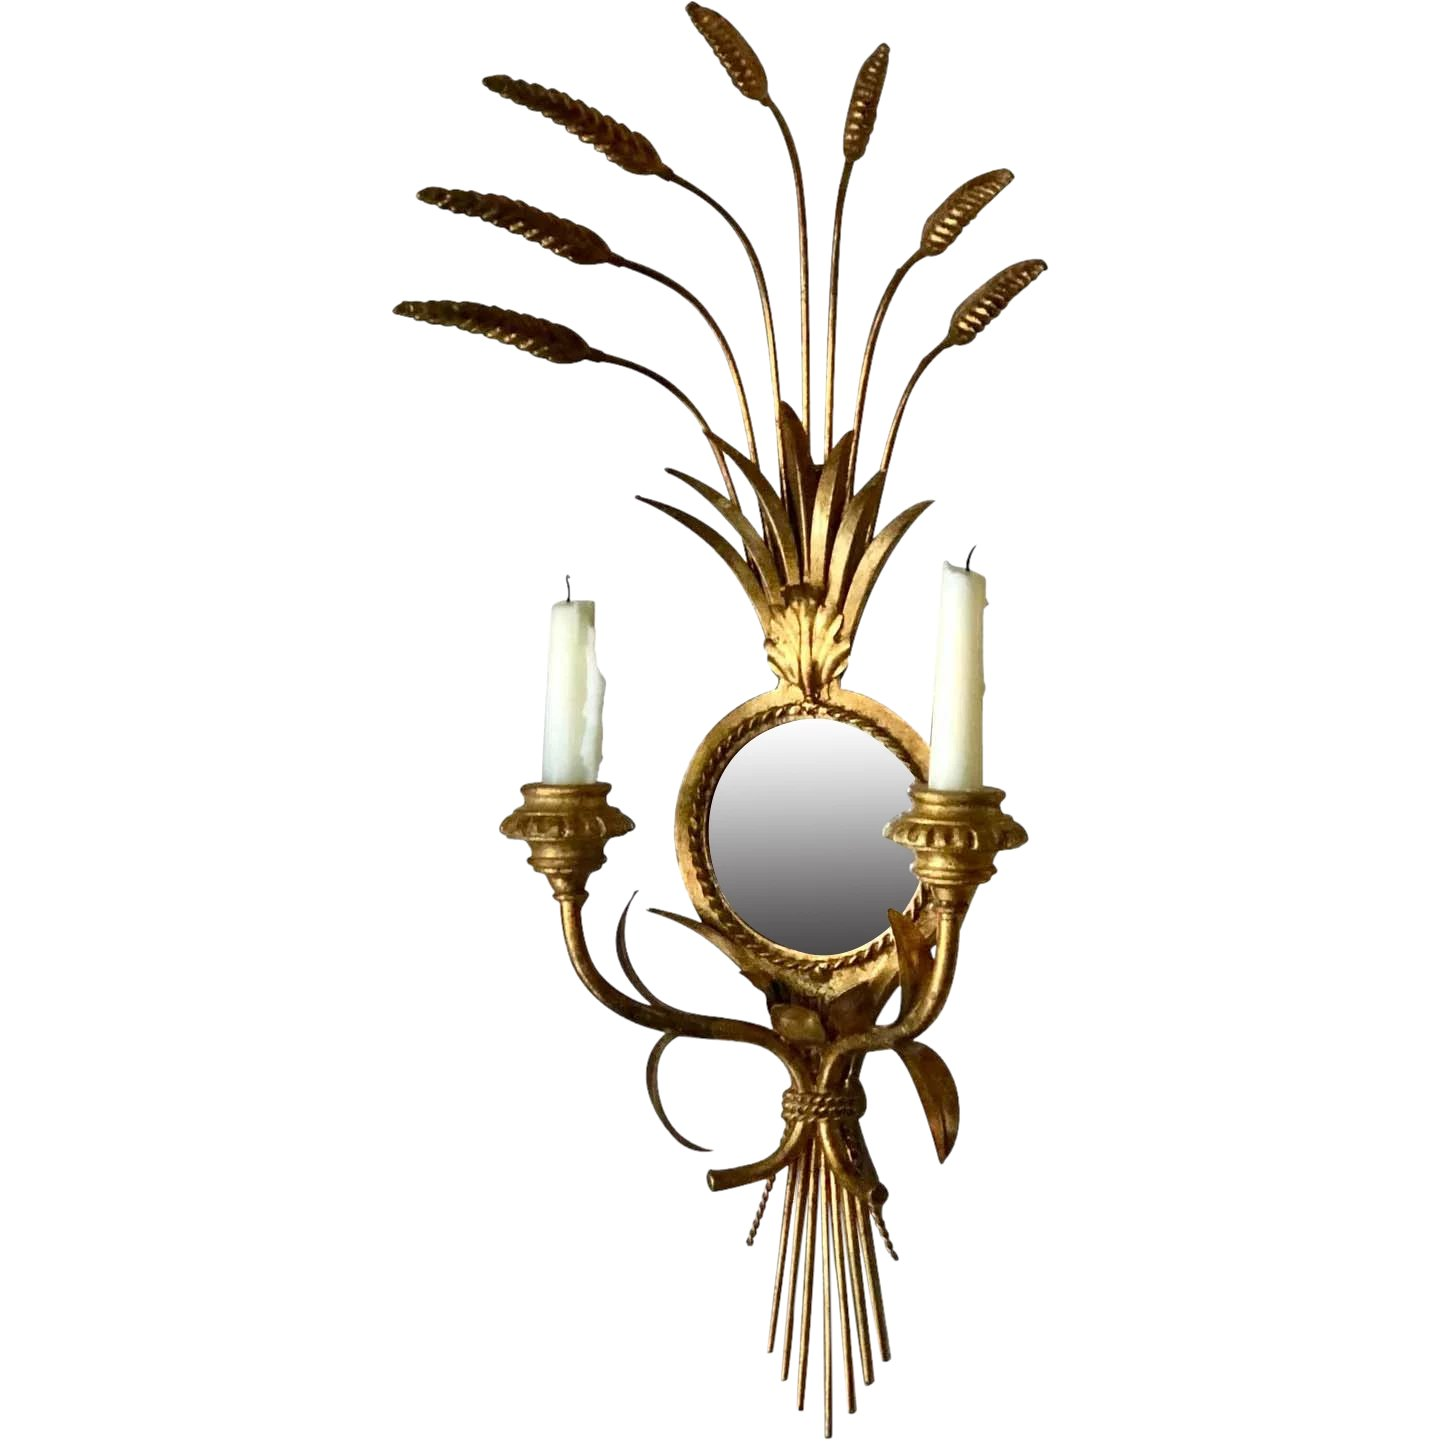 Image of: Wall Mirror Sconce Candle Holder Hollywood Regency The Gilded Lion Ruby Lane